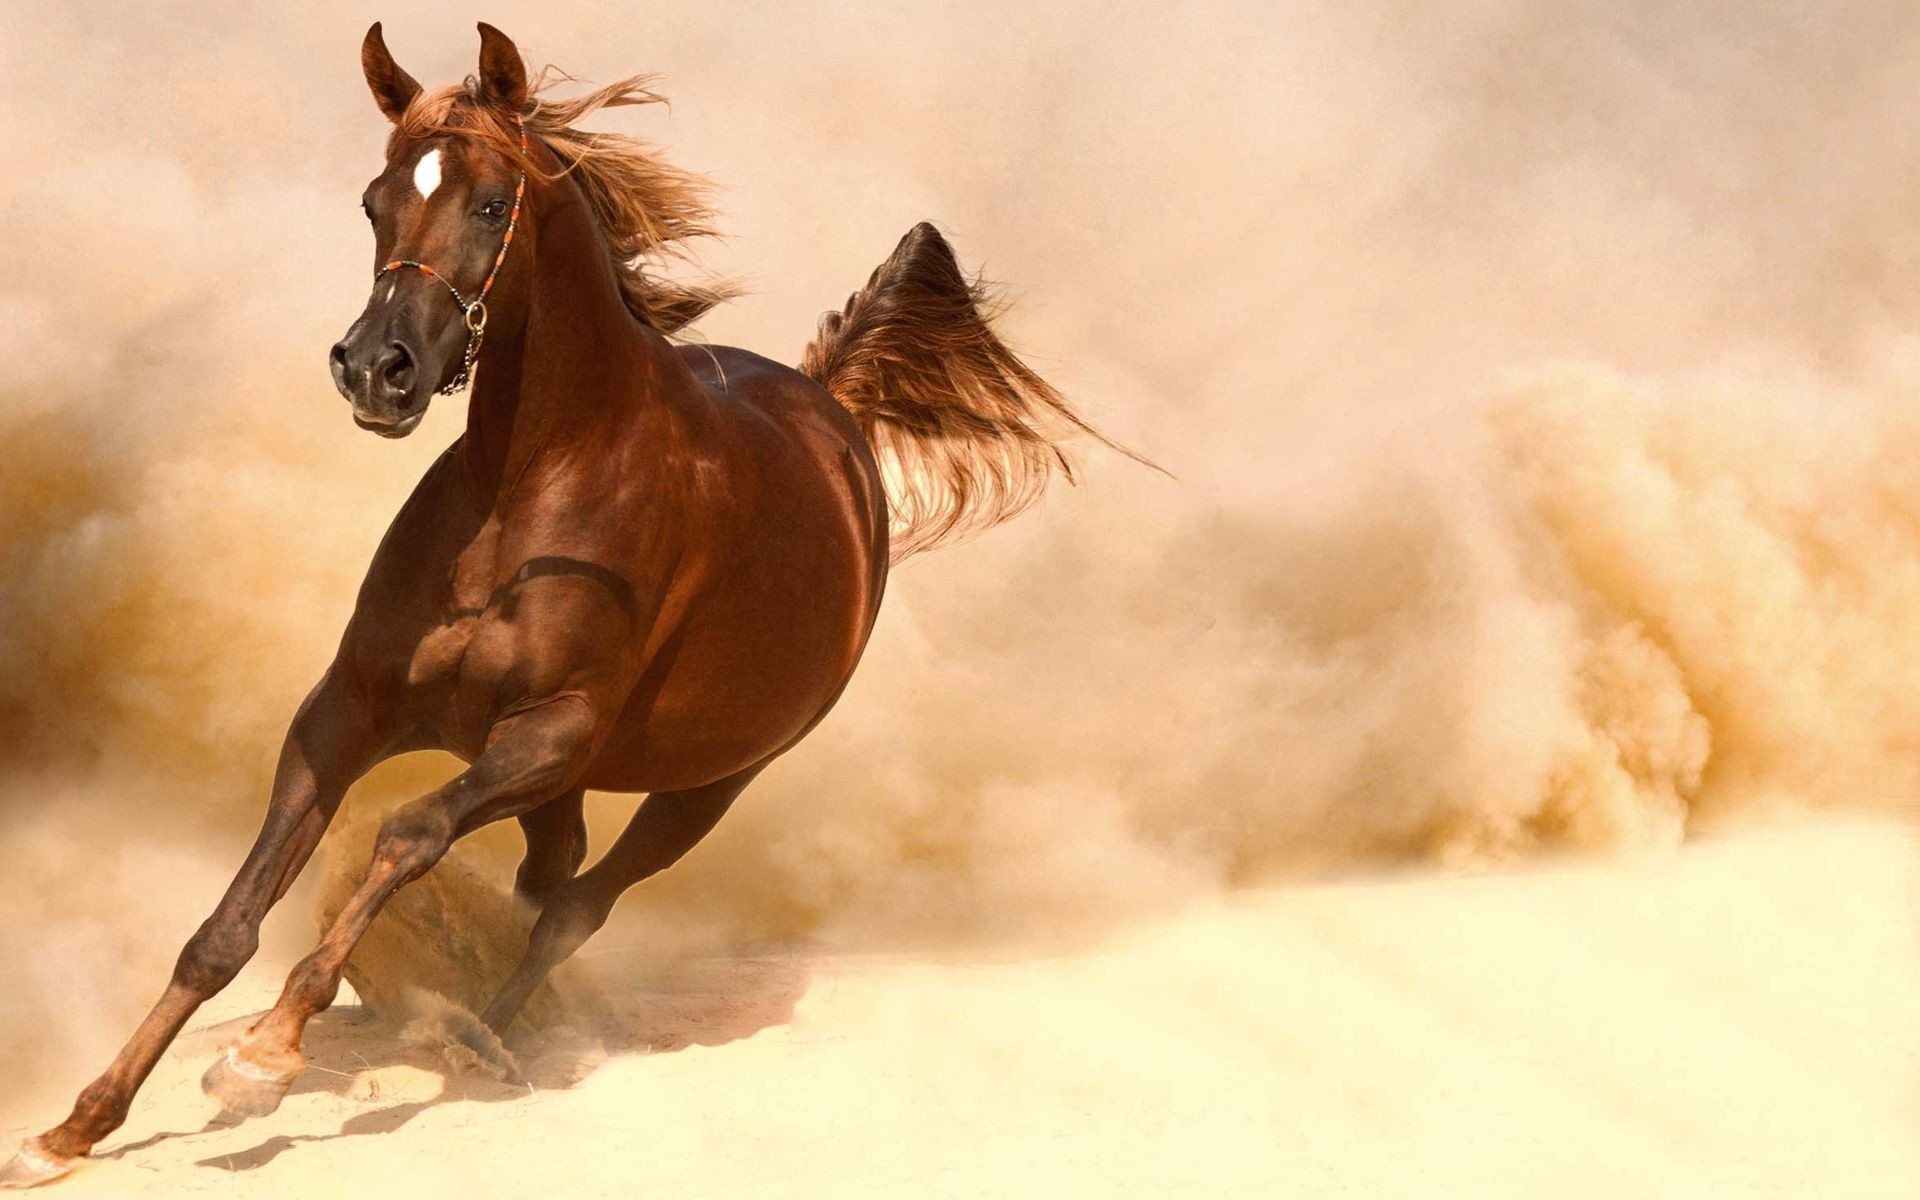 Running Horses Wallpaper (63+ images) - photo#14